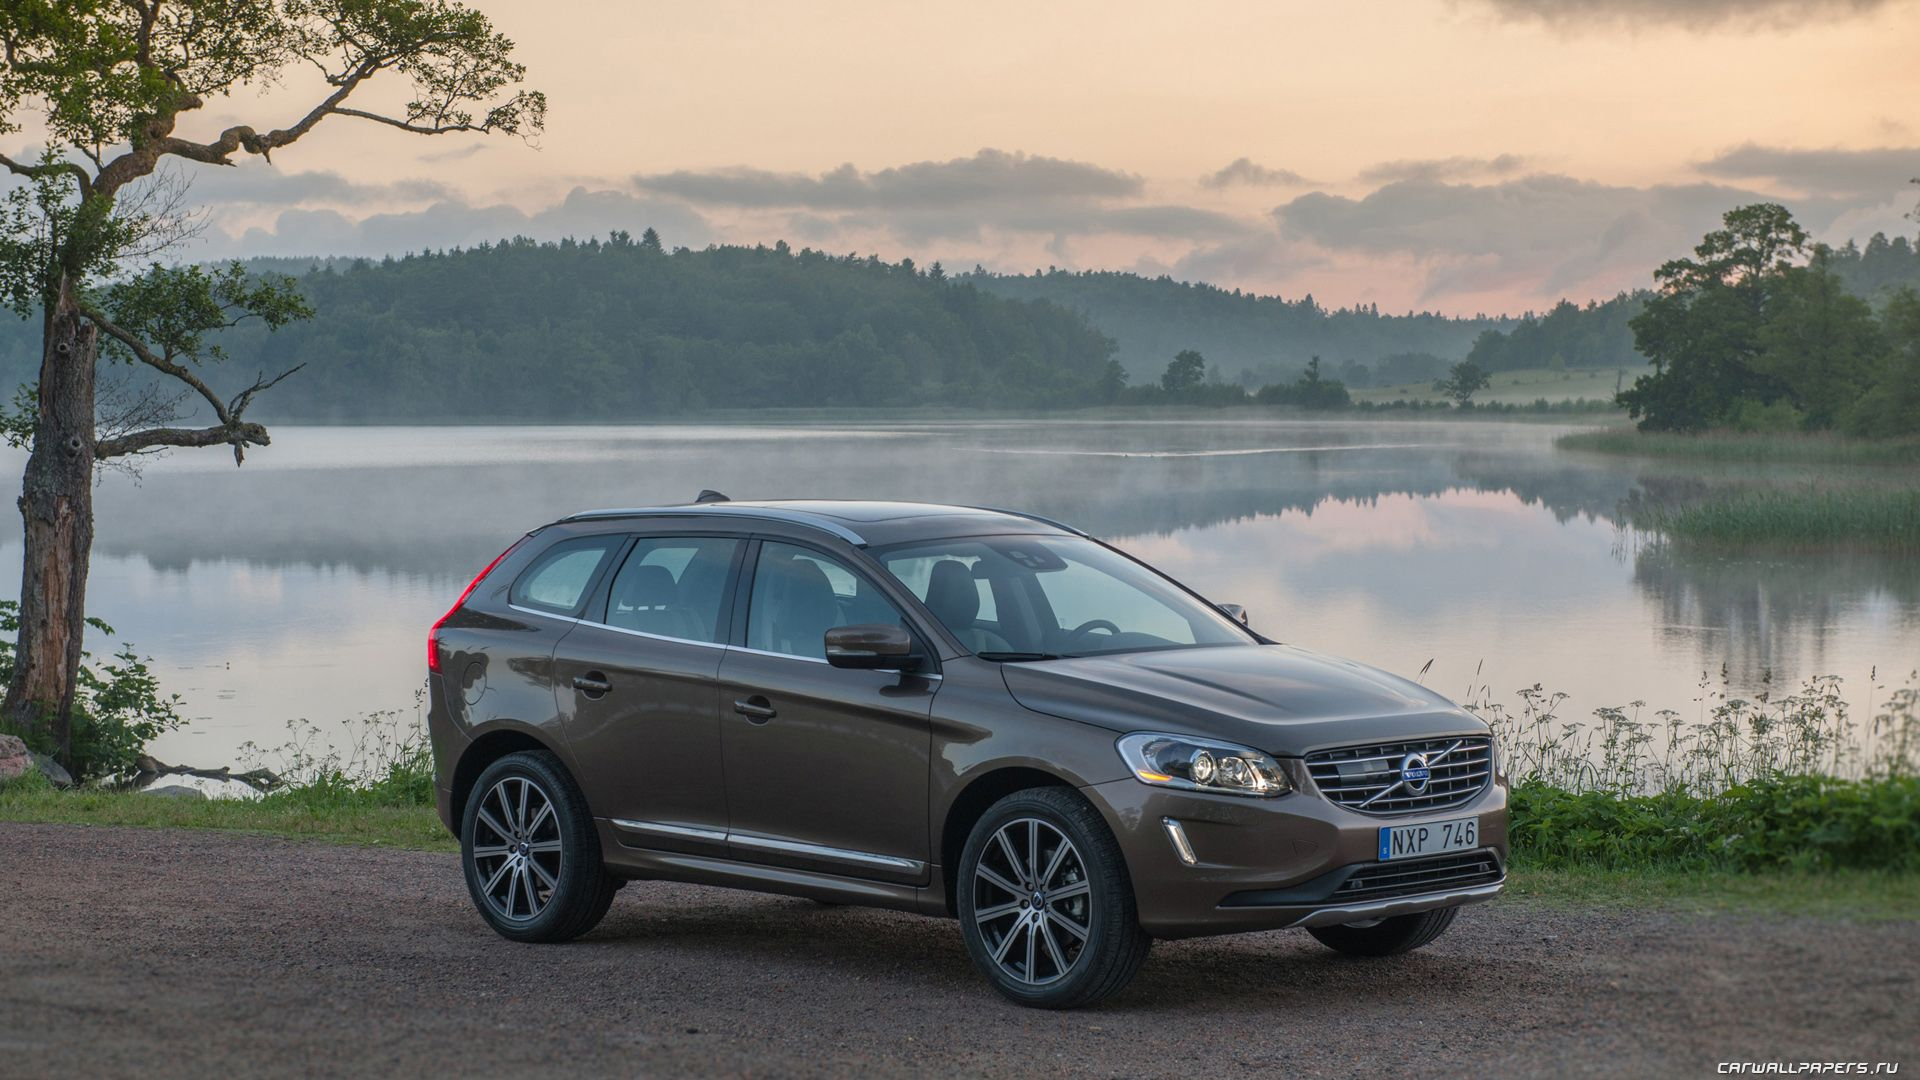 Volvo xc60 savile gray metallic love products i love and want pinterest volvo xc60 volvo and cars